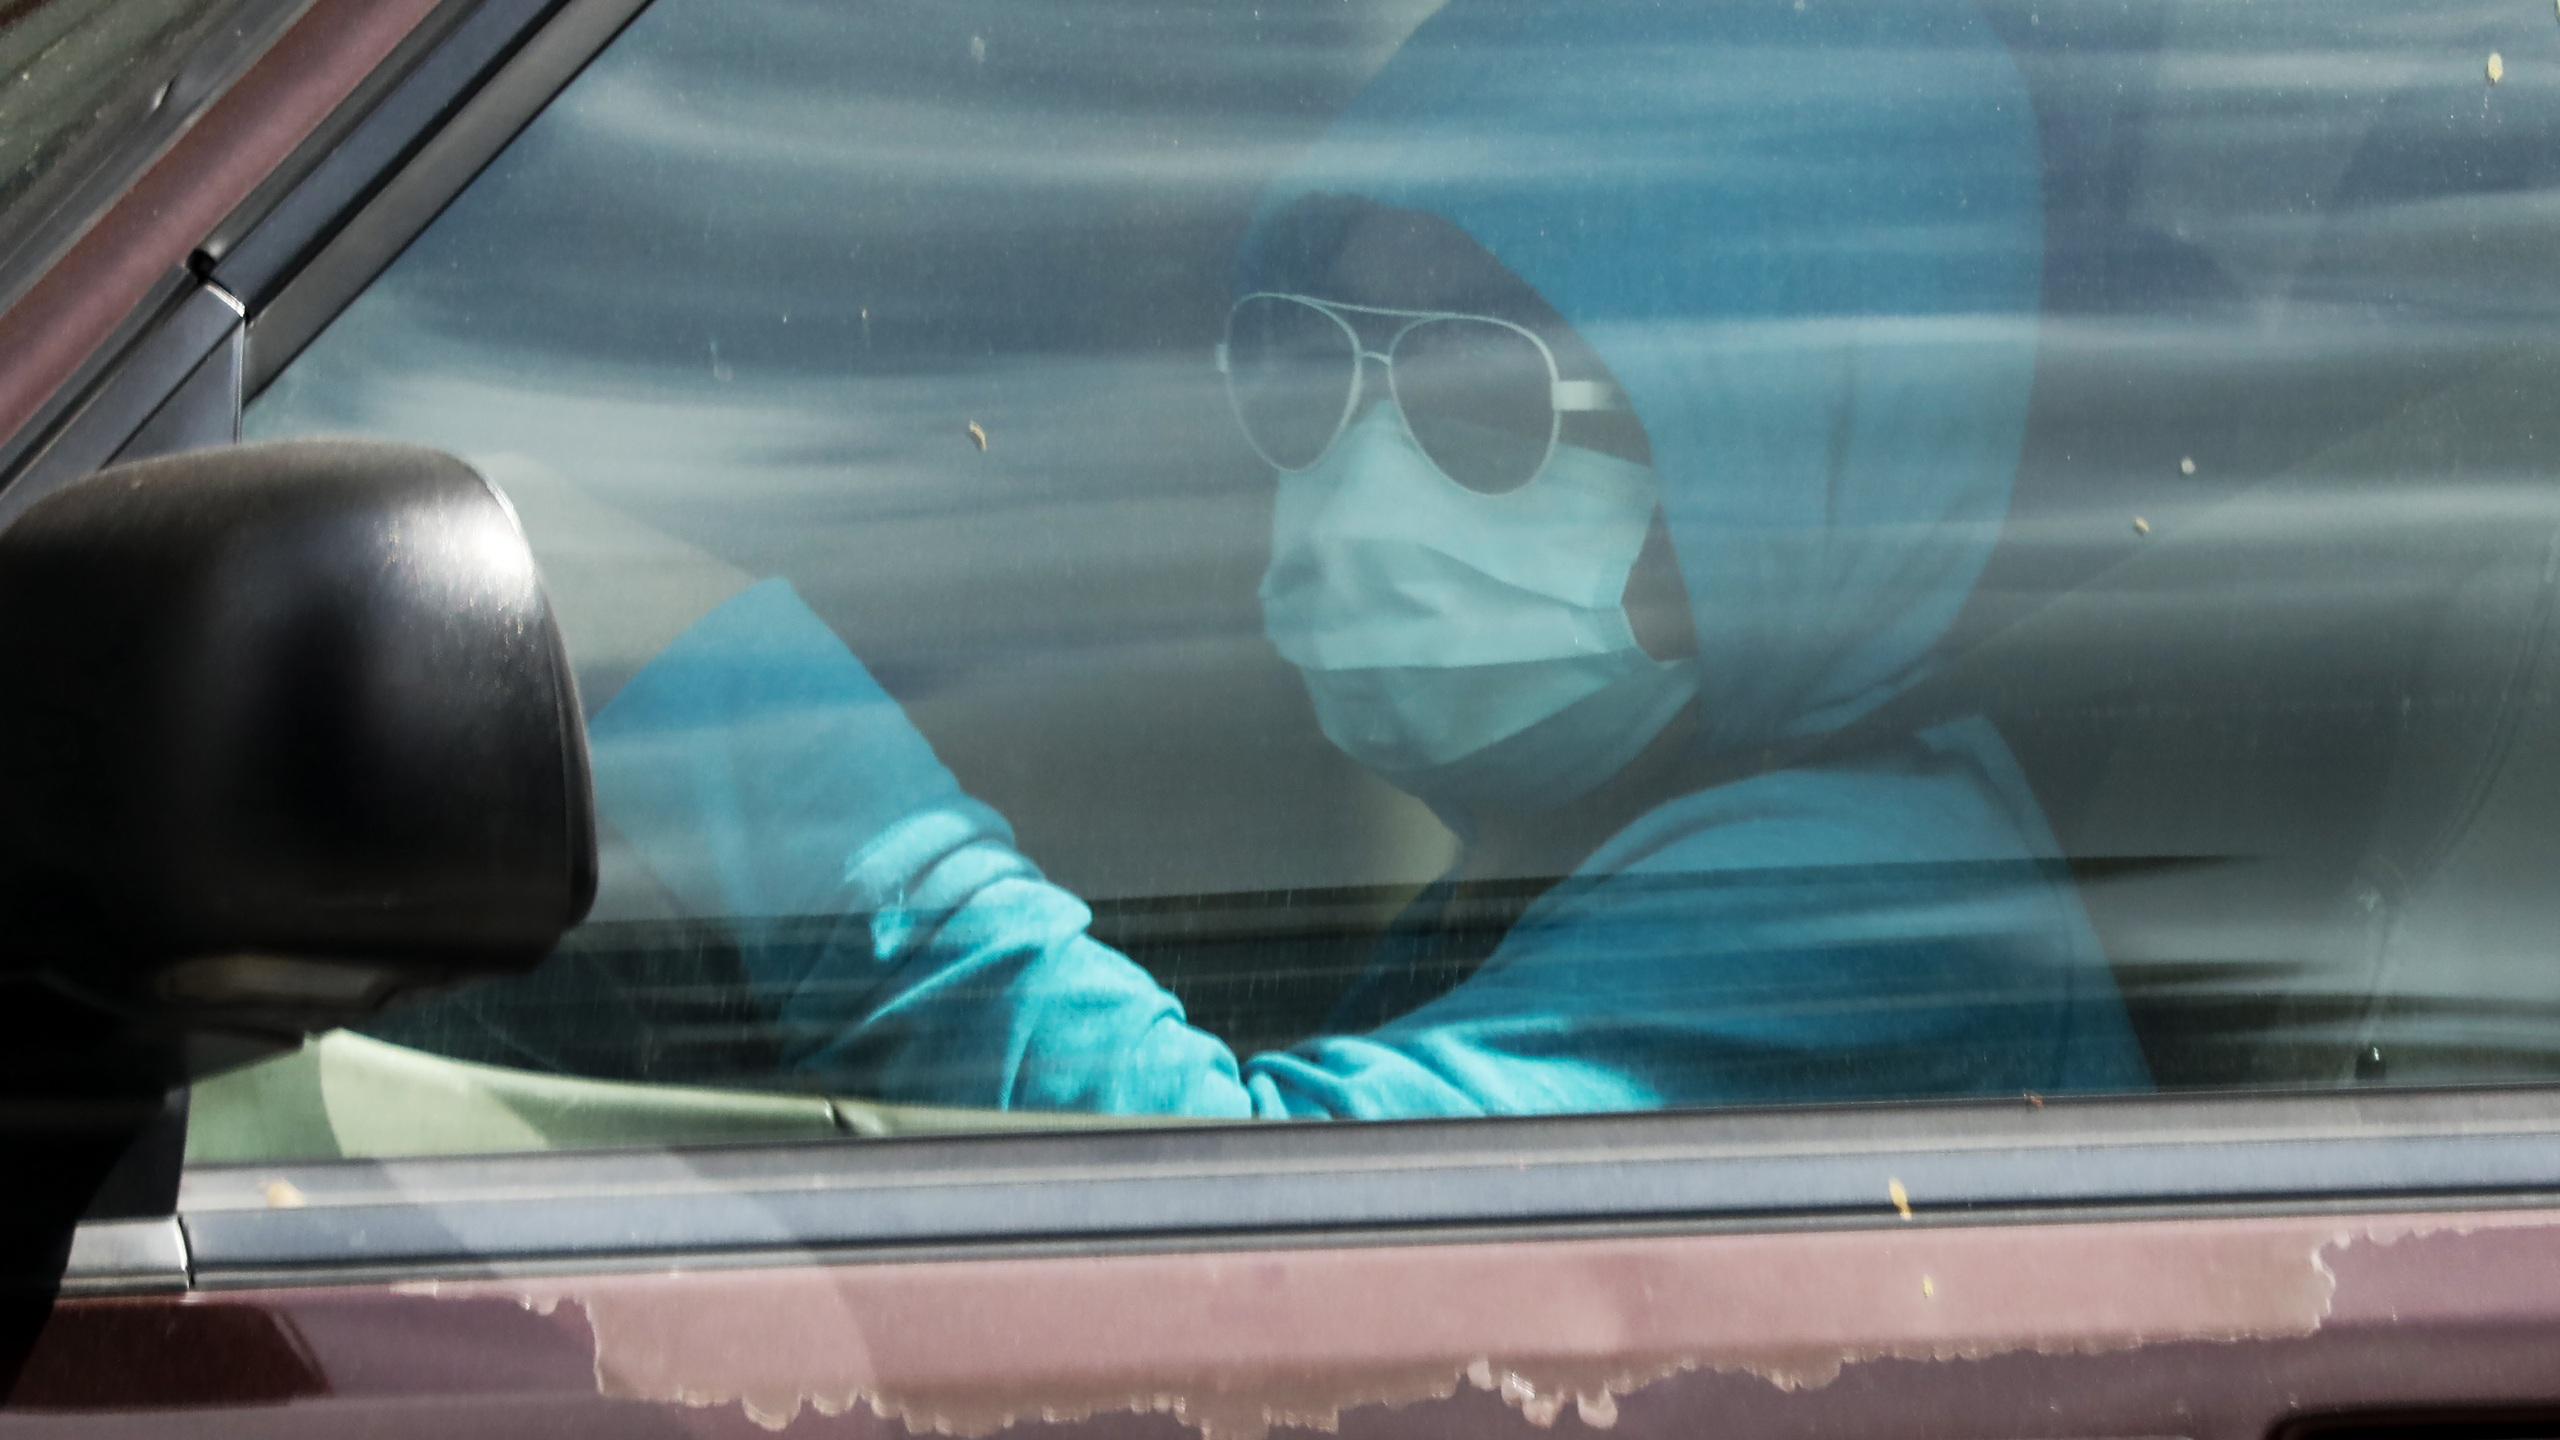 A driver wears a face mask amid the coronavirus pandemic on April 4, 2020 in Los Angeles, California. (Mario Tama/Getty Images)